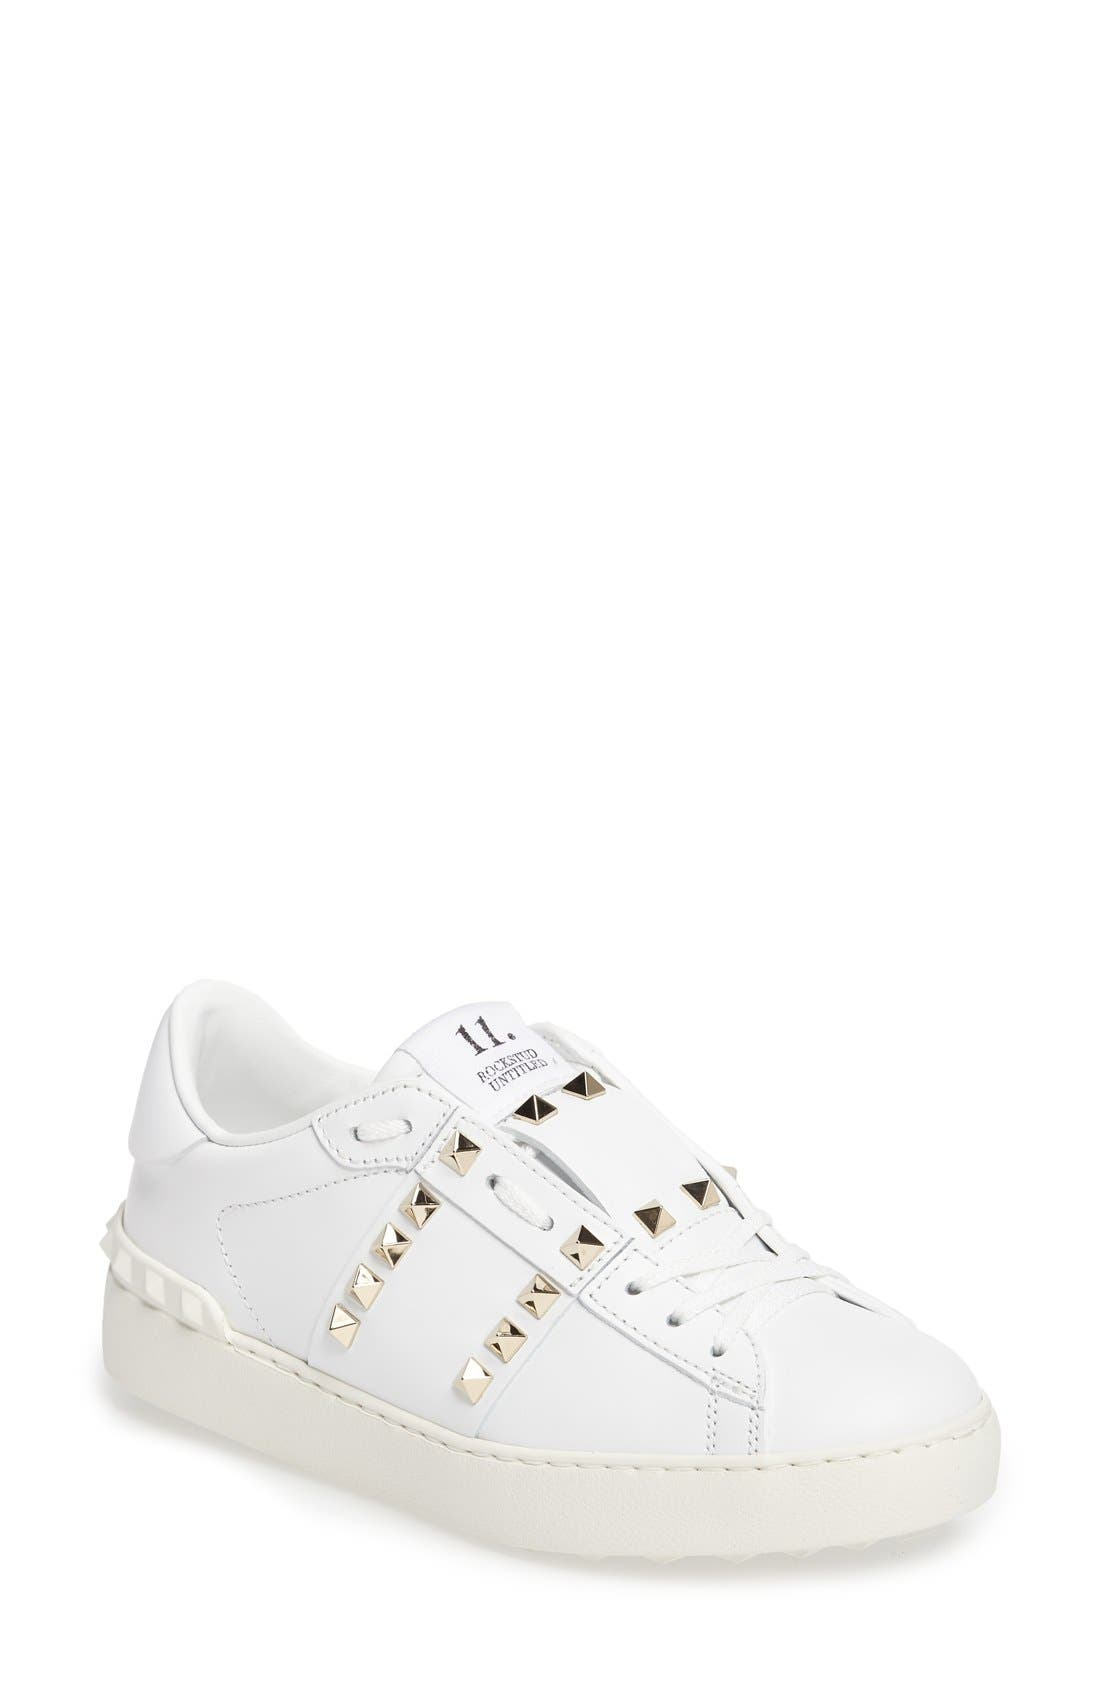 Alternate Image 1 Selected - VALENTINO GARAVANI 'Rockstud' Sneaker (Women)